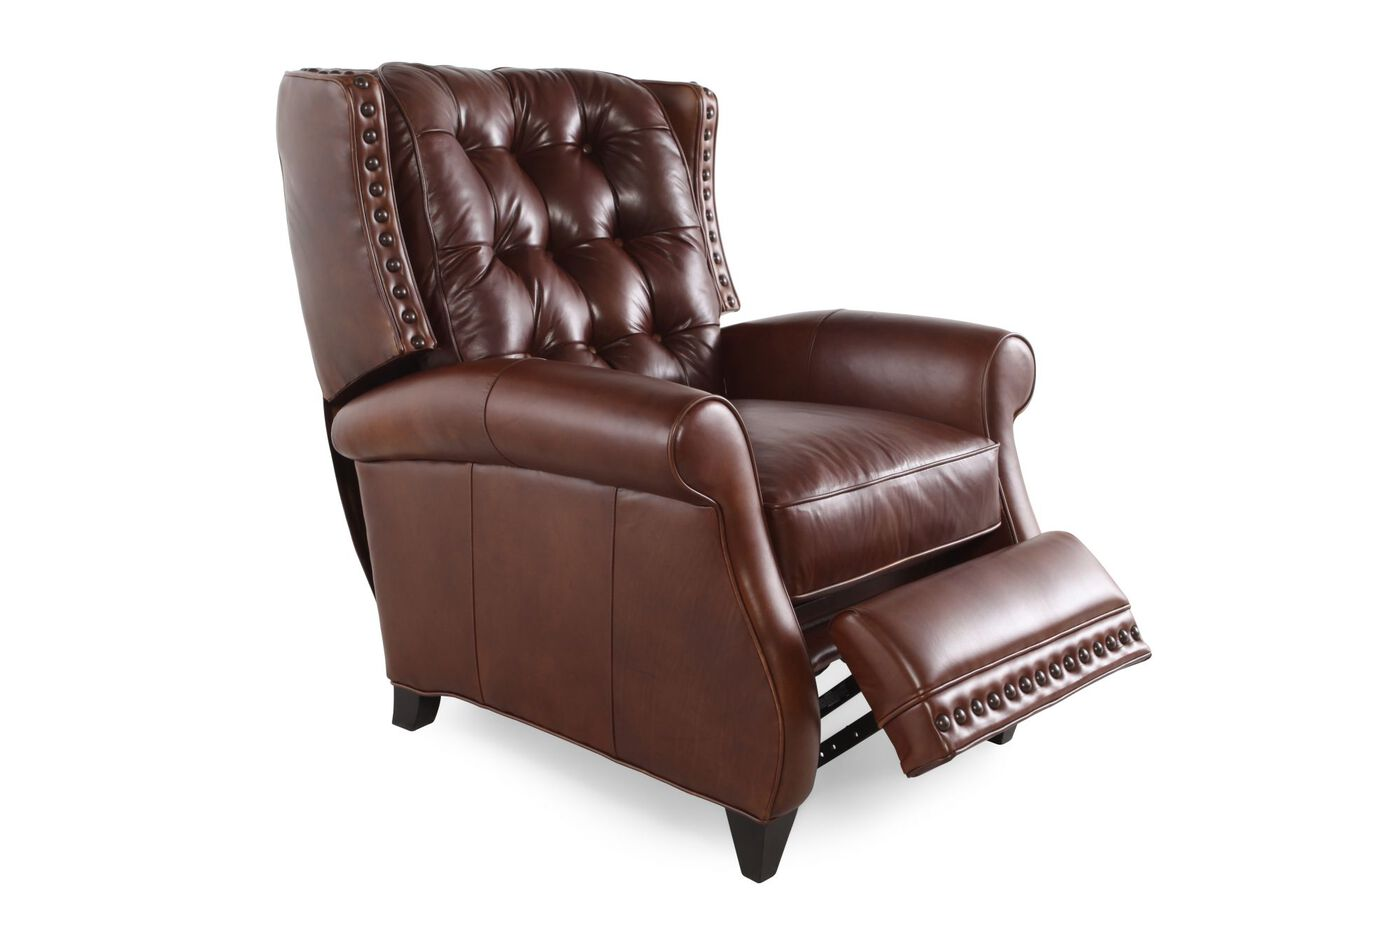 bernhardt pierce leather recliner bedroomsplendid leather desk chair furniture office sealy